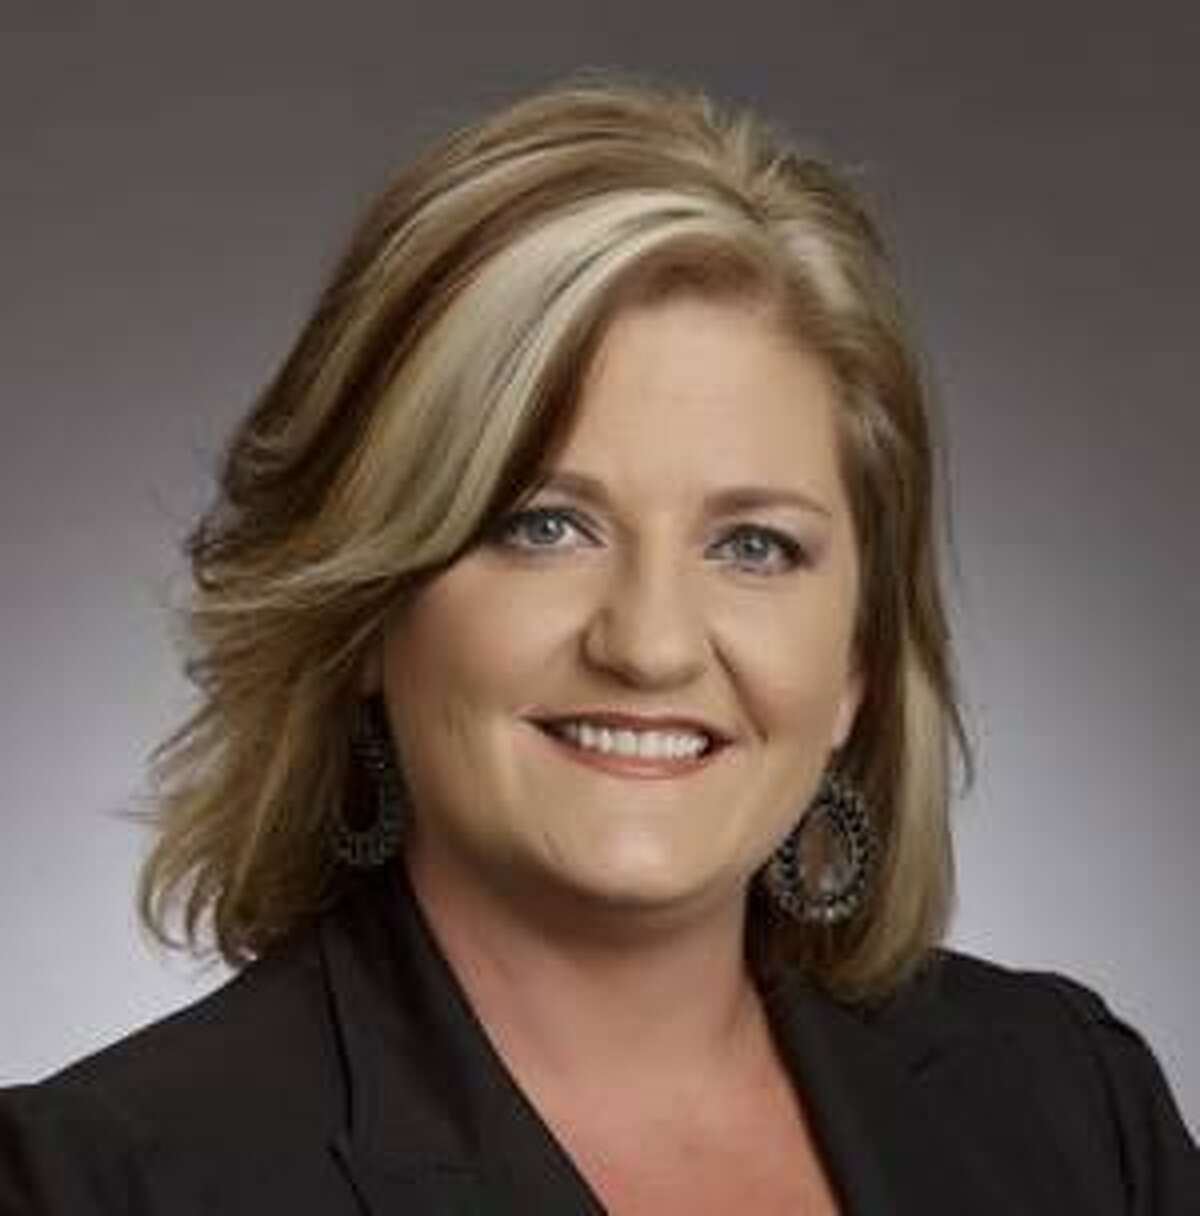 Ponderosa Elementary School Principal Shanna Swearingen, in Spring ISD, has apologized for a disparaging comment she made about a student who is in special education. Swipe through to see some of the highest paid principals in the Houston area.